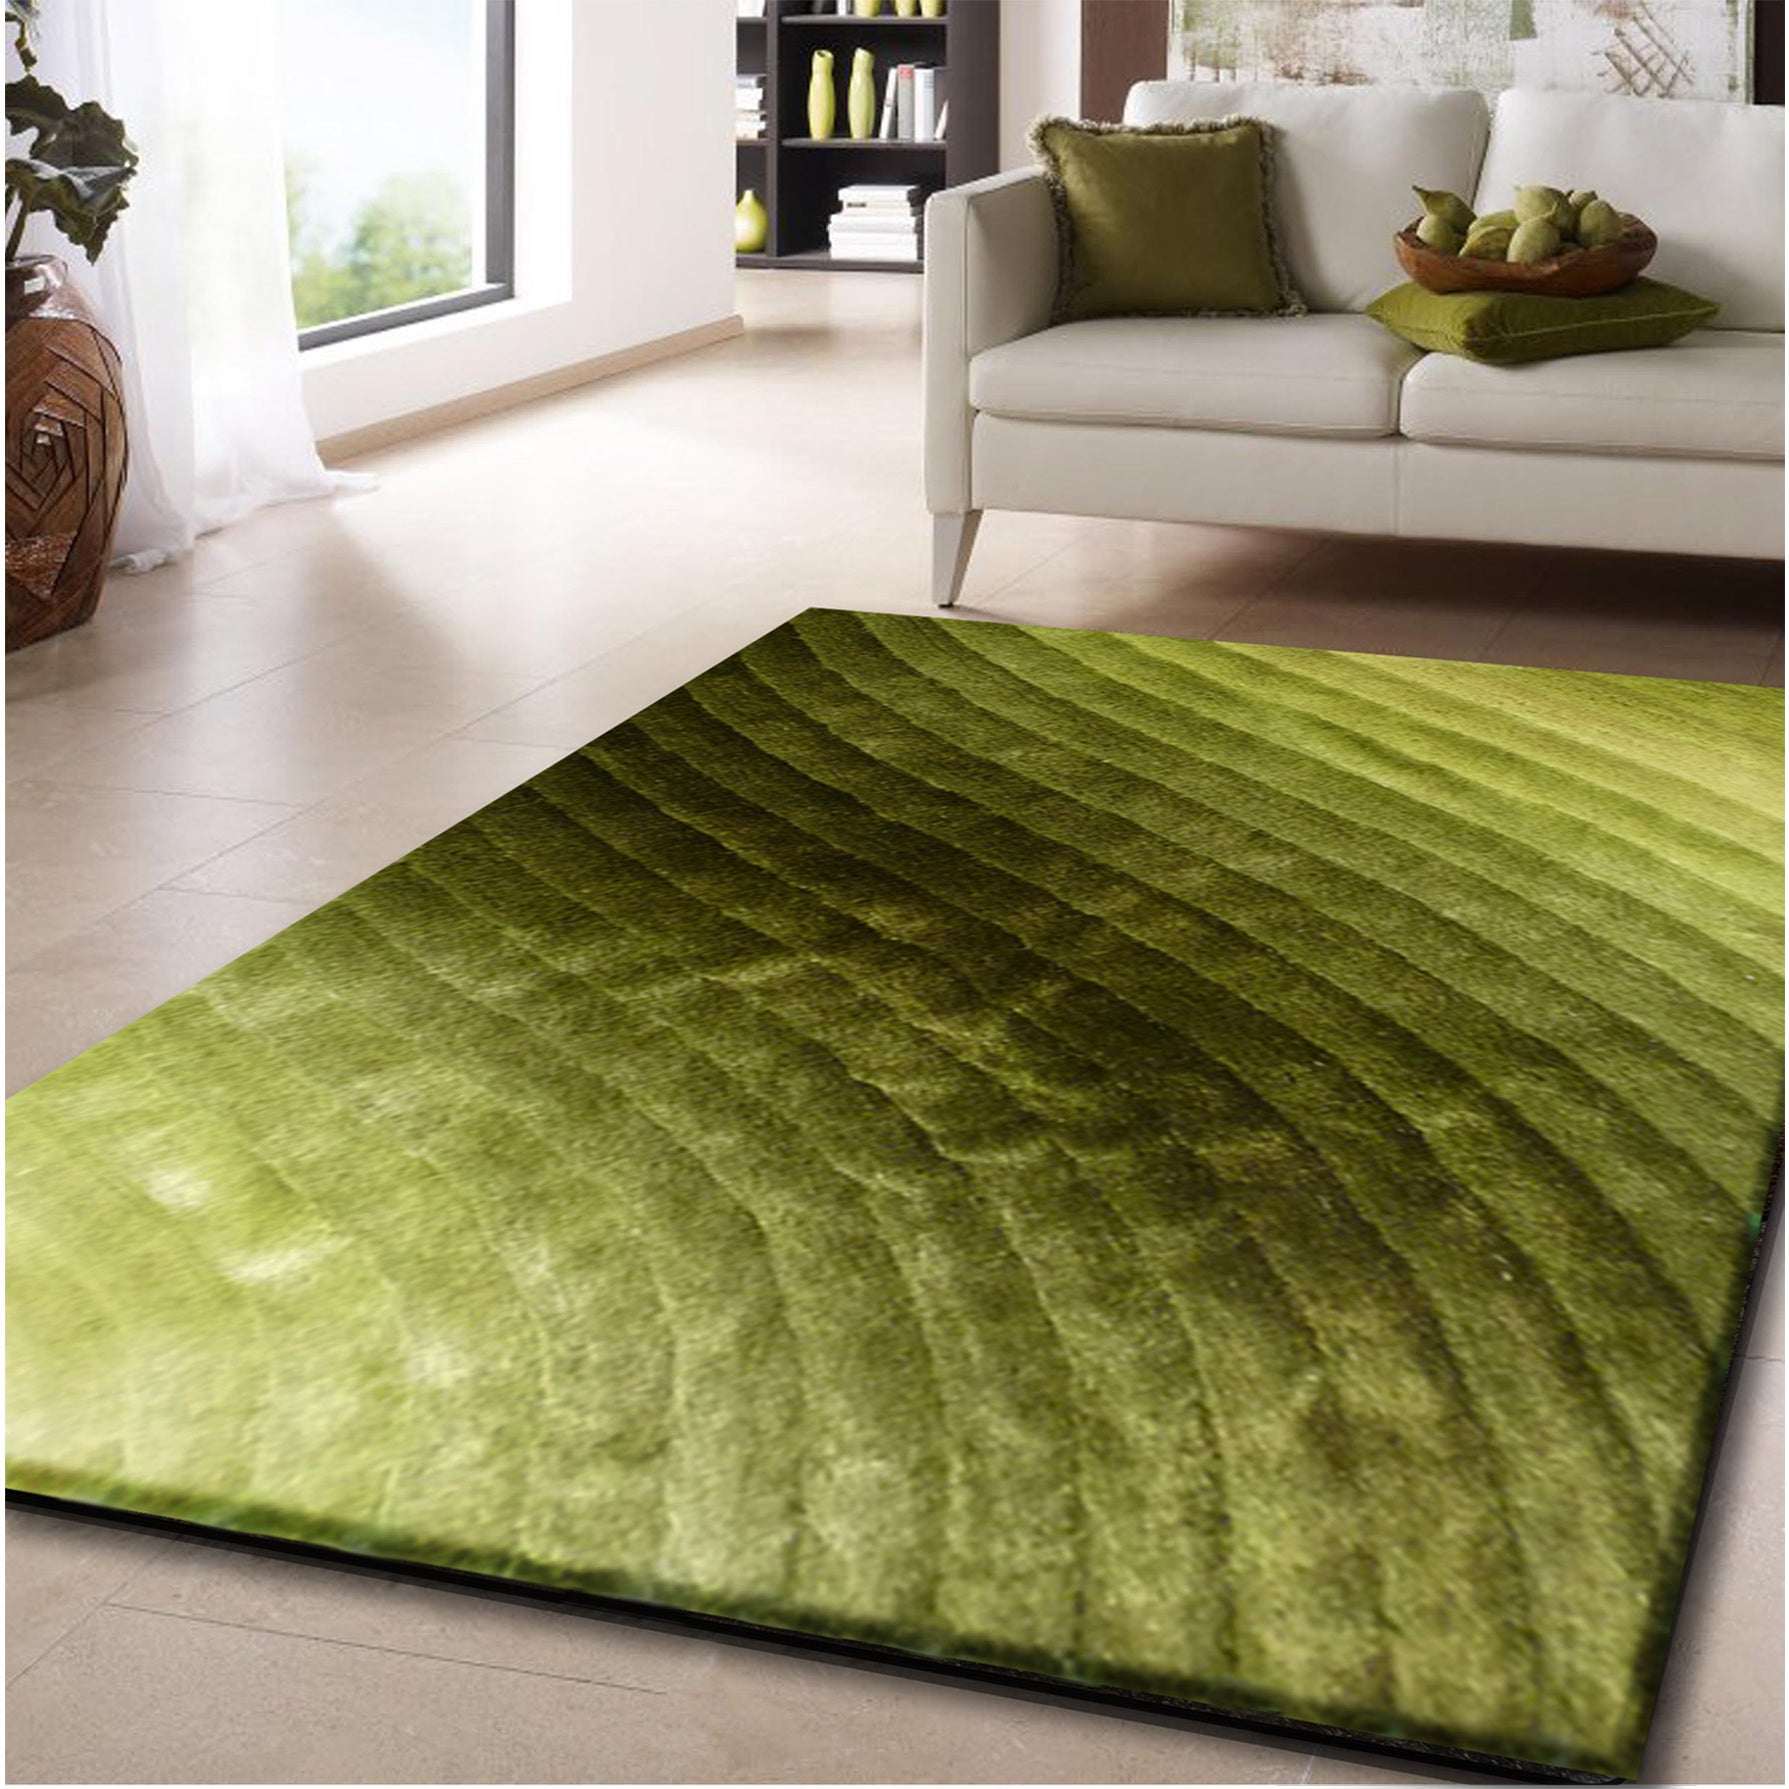 Gradient Waves of Green 3-dimensional Shag Area Rug (8' x...